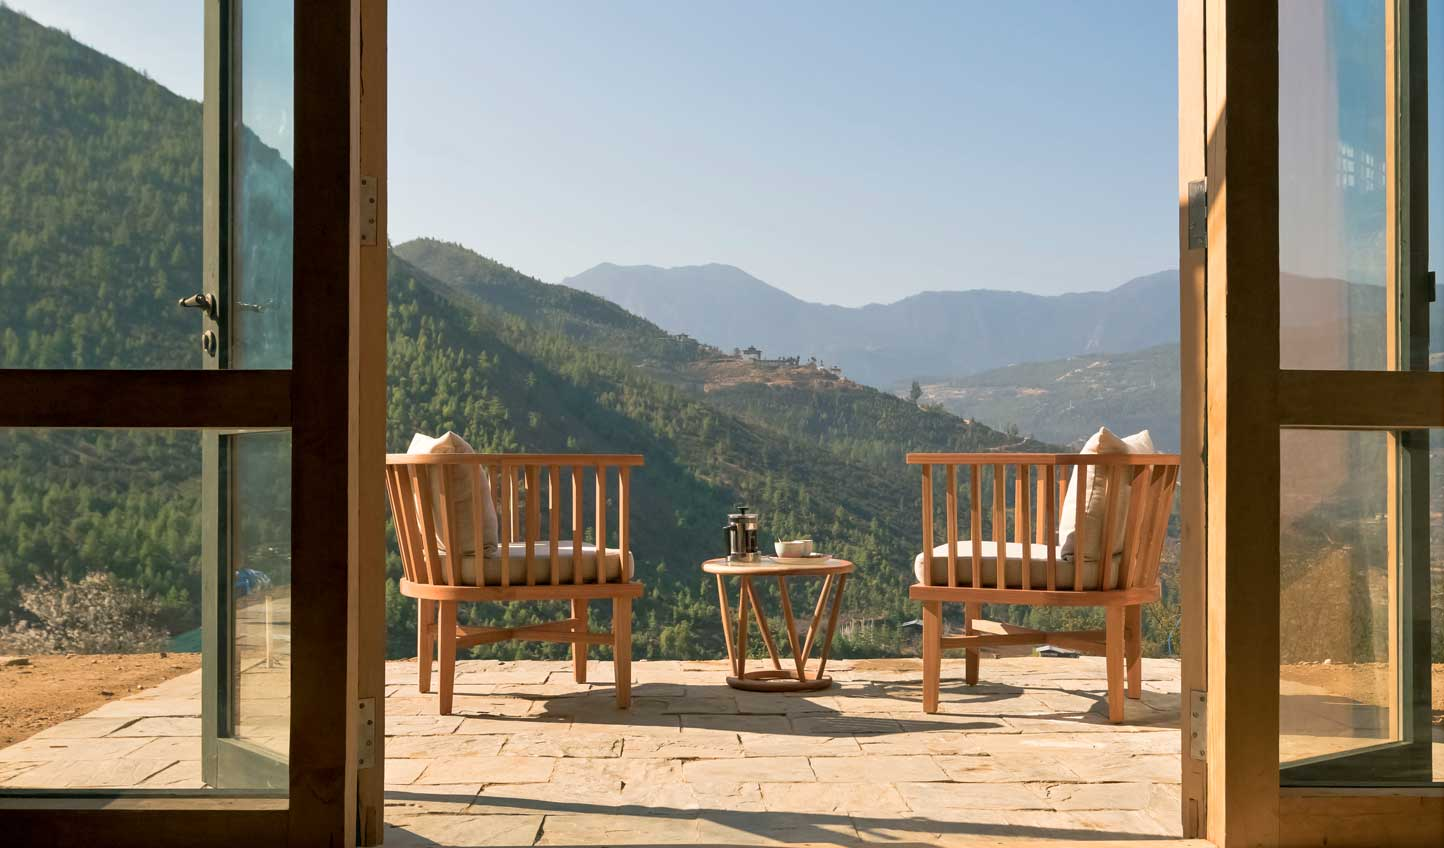 Take tea on your private terrace and soak up the views